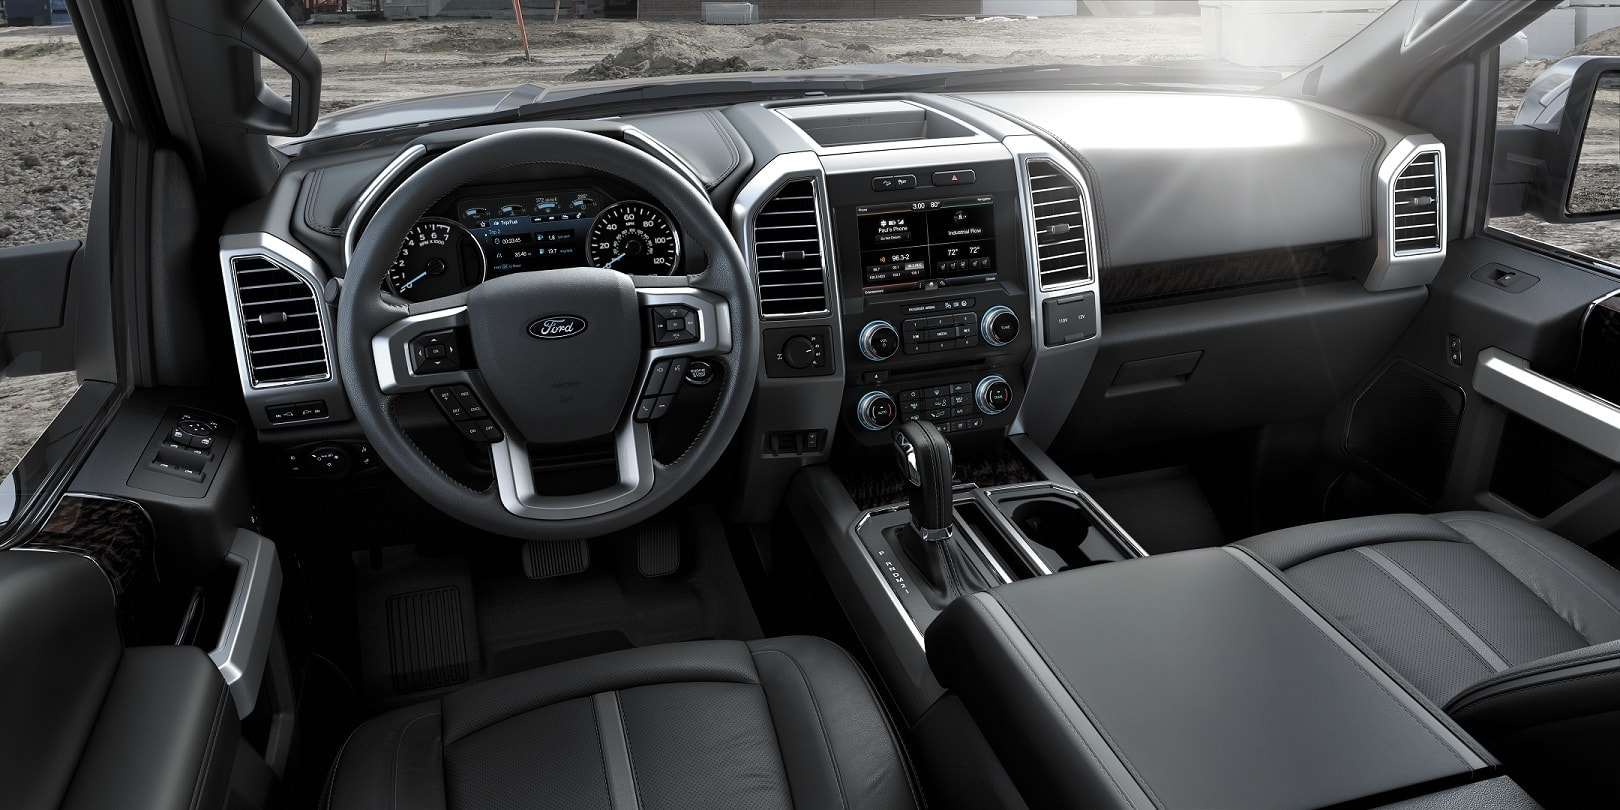 Ford F-150 Interior and Exterior Vehicle Specs and Features